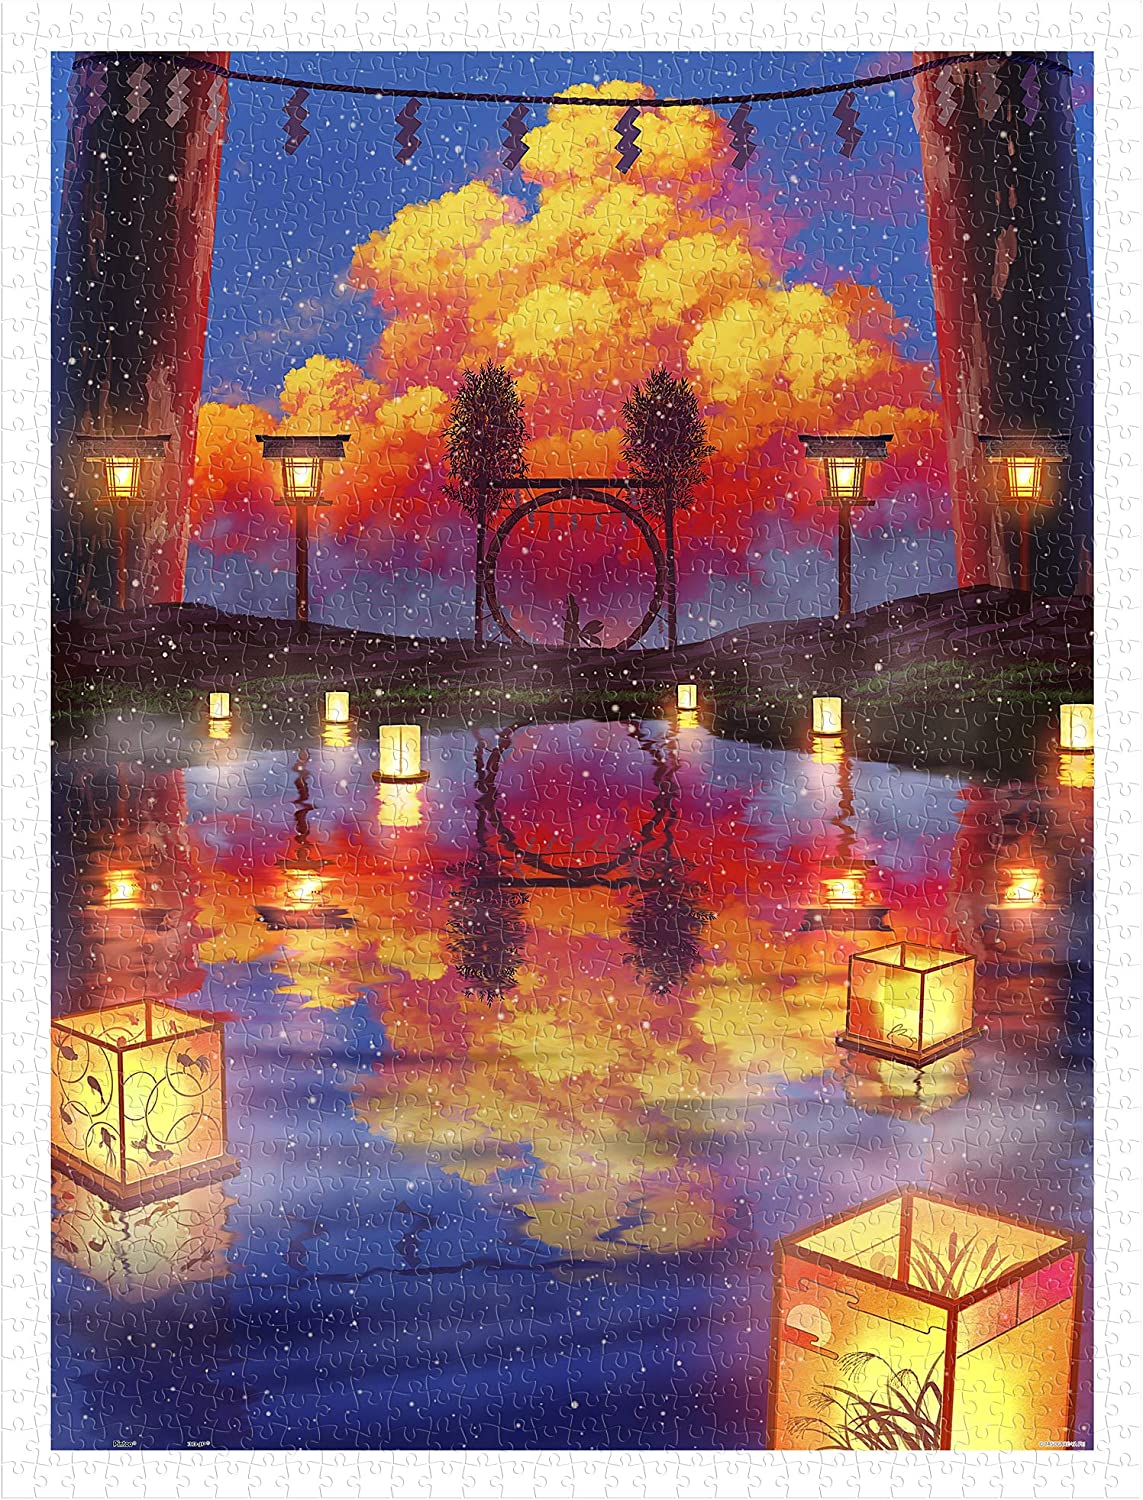 Pintoo - H2413 ペい Reservation Floating Lantern Surprise price 1200 Piece Festival